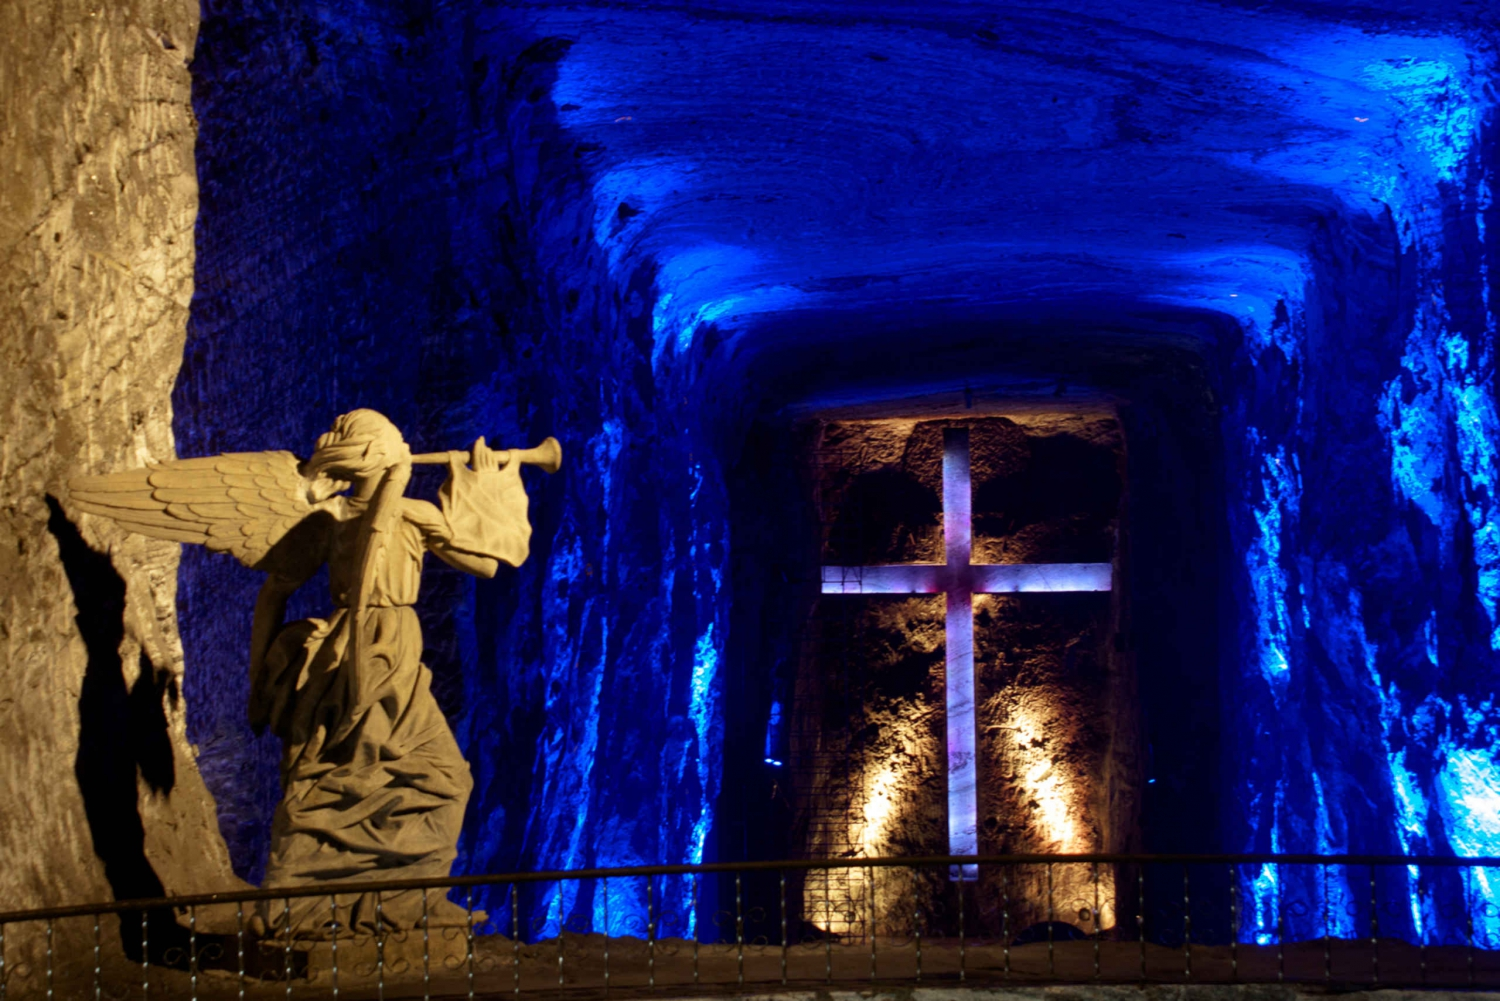 From Bogotá: Zipaquirá Salt Cathedral Guided Tour